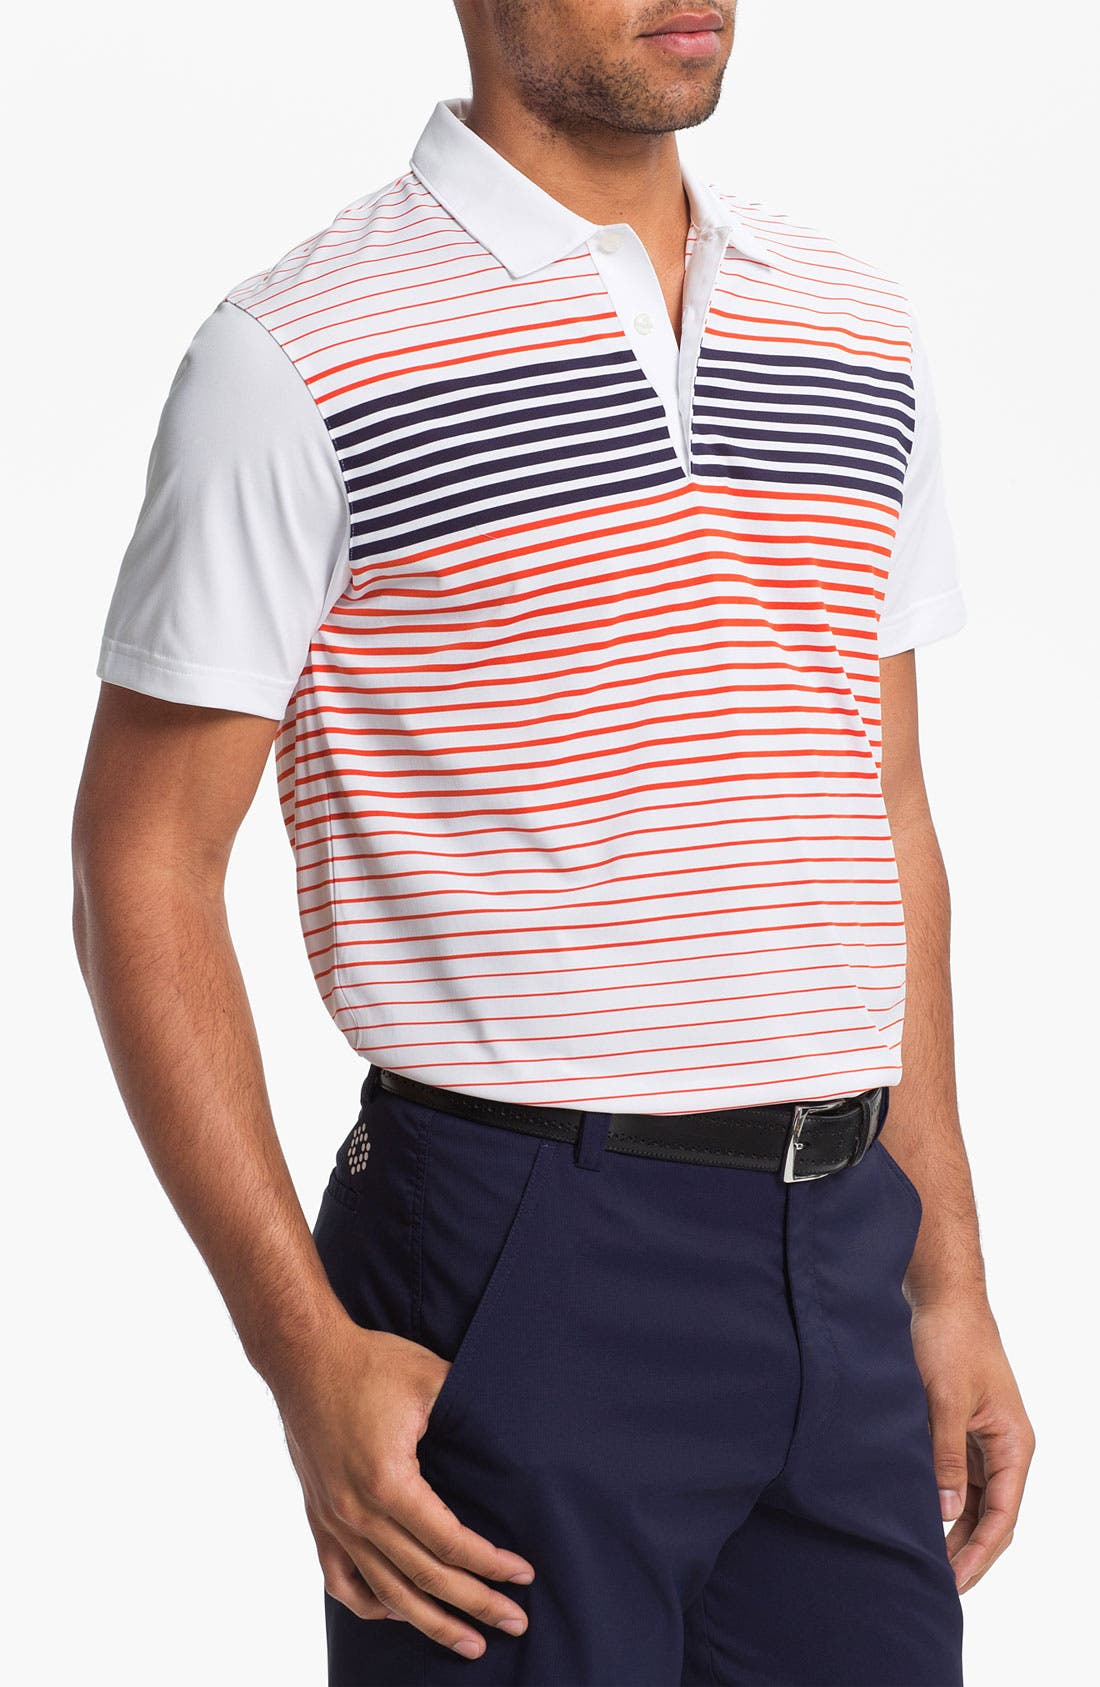 Main Image - PUMA GOLF 'Engineered Stripe' dryCELL™ Tech Polo